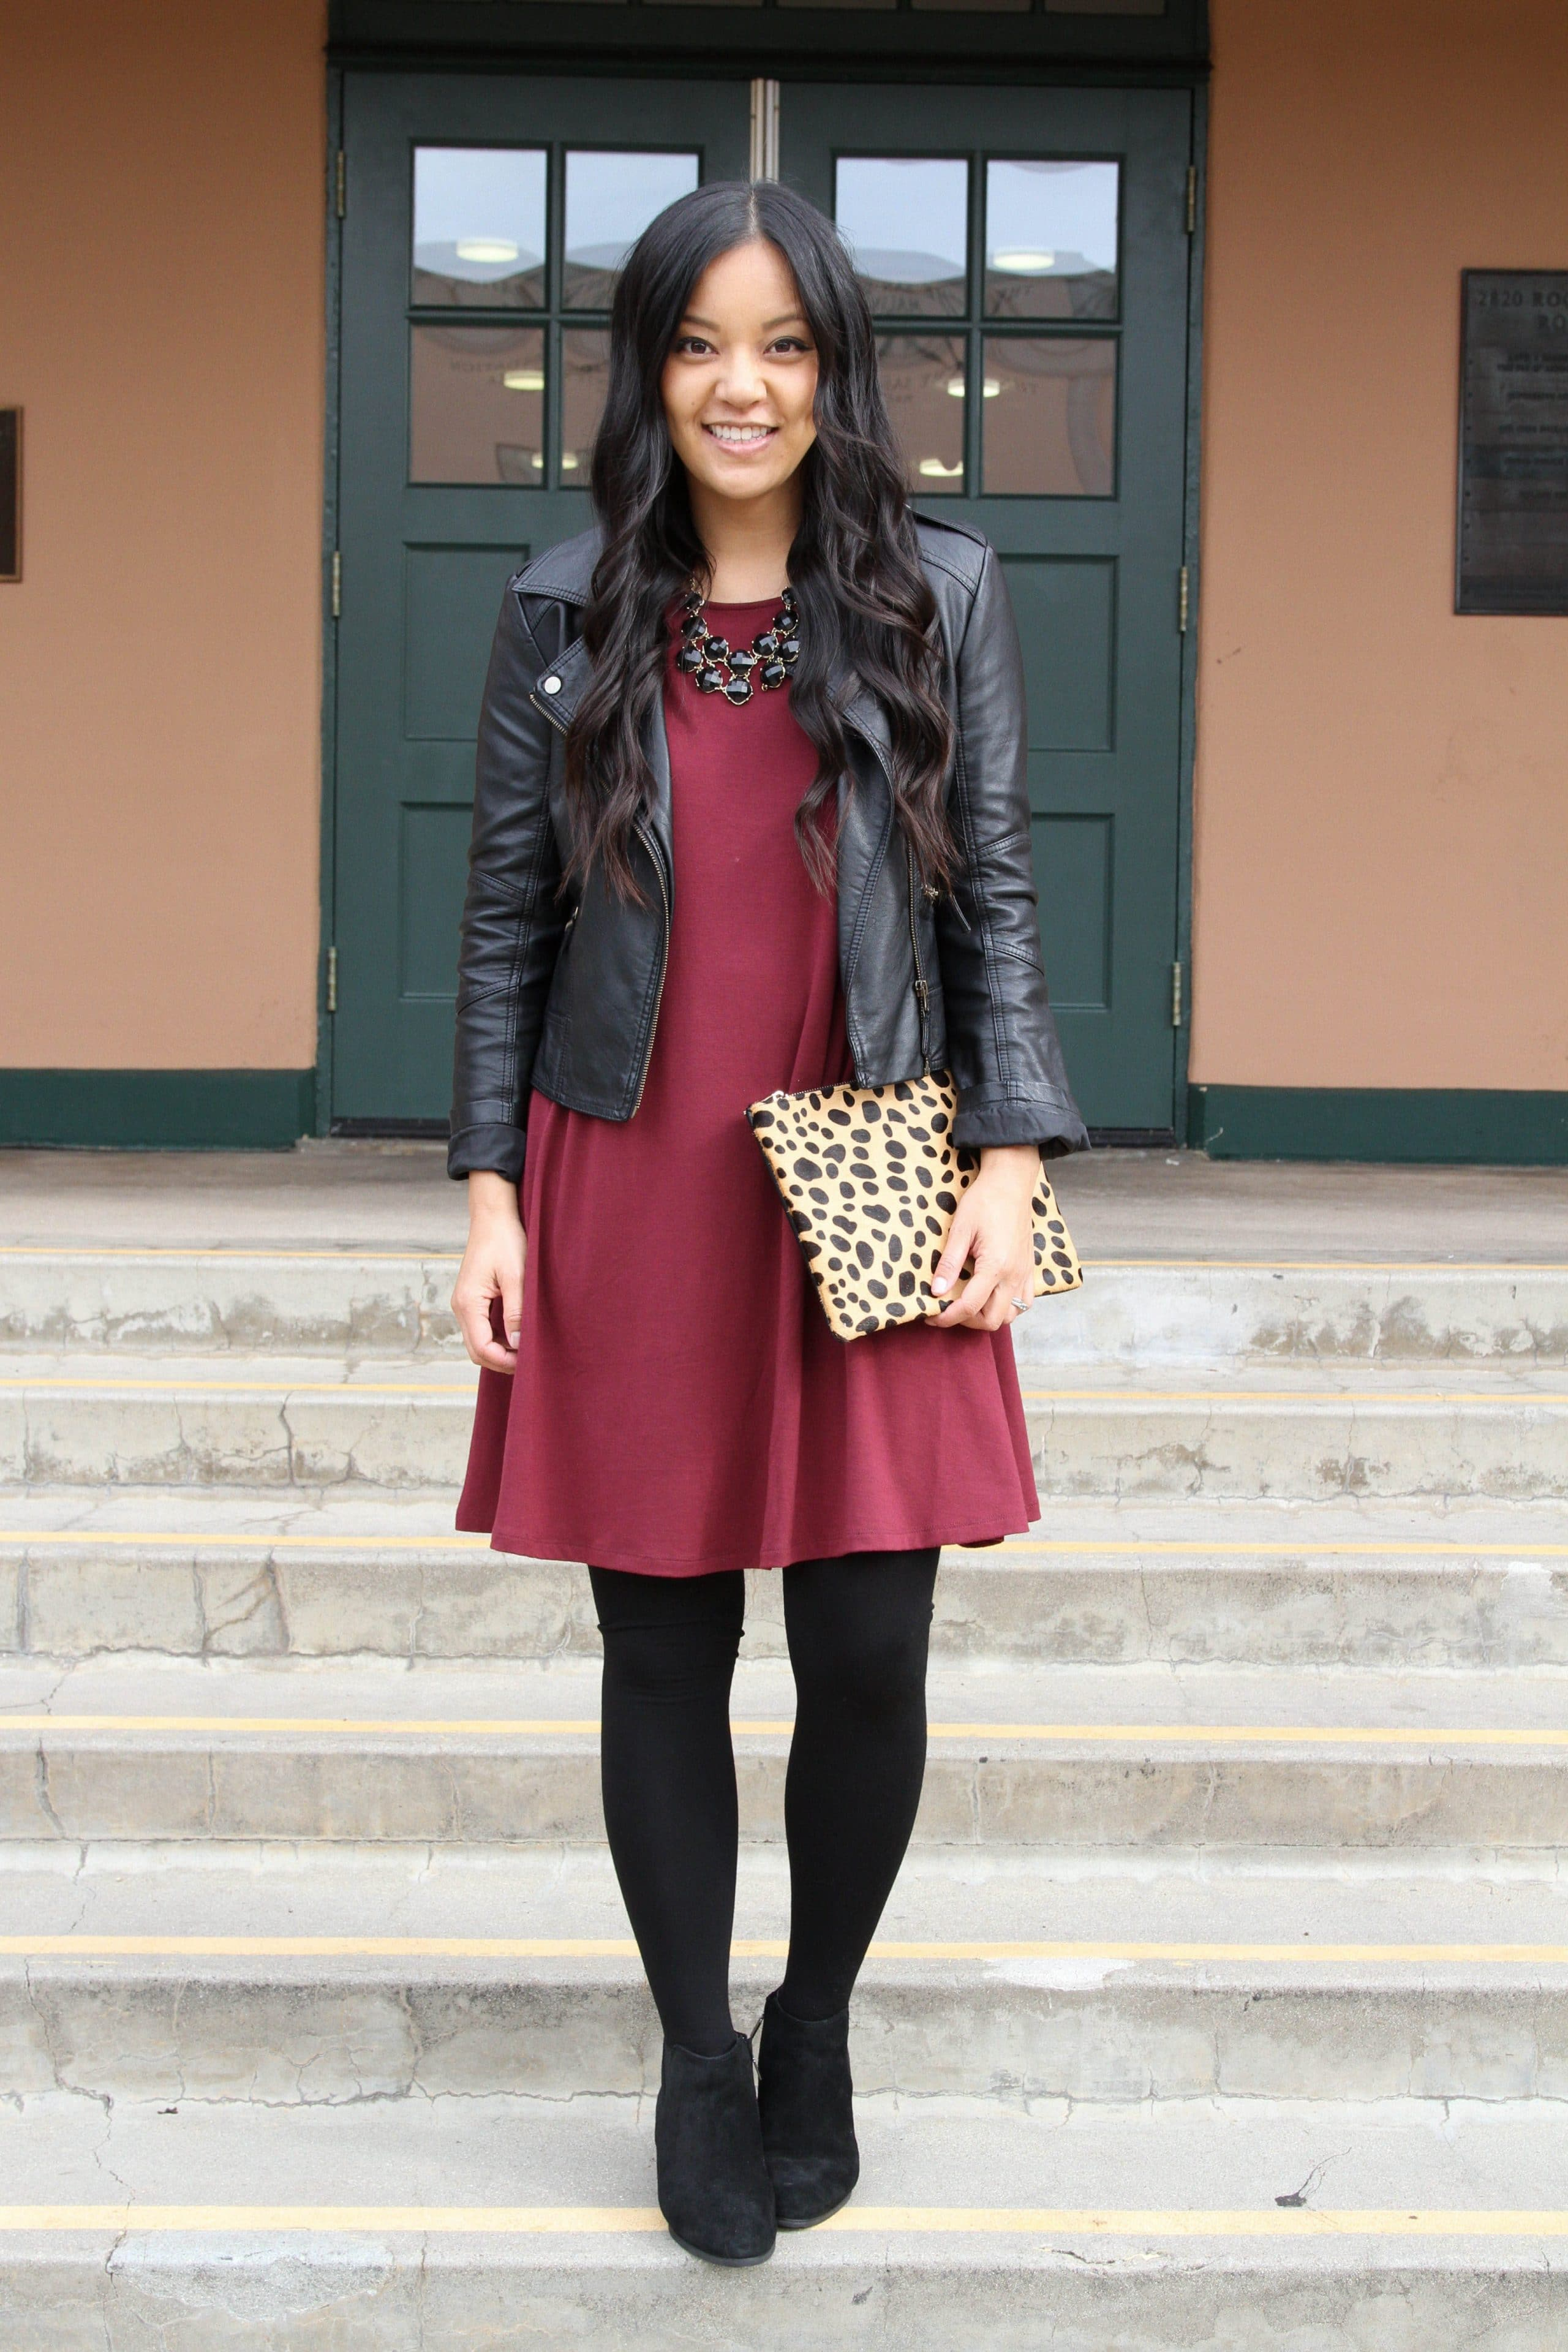 Maroon Dress + Black Statement Necklace + Black Moto Jacket + Black Tights